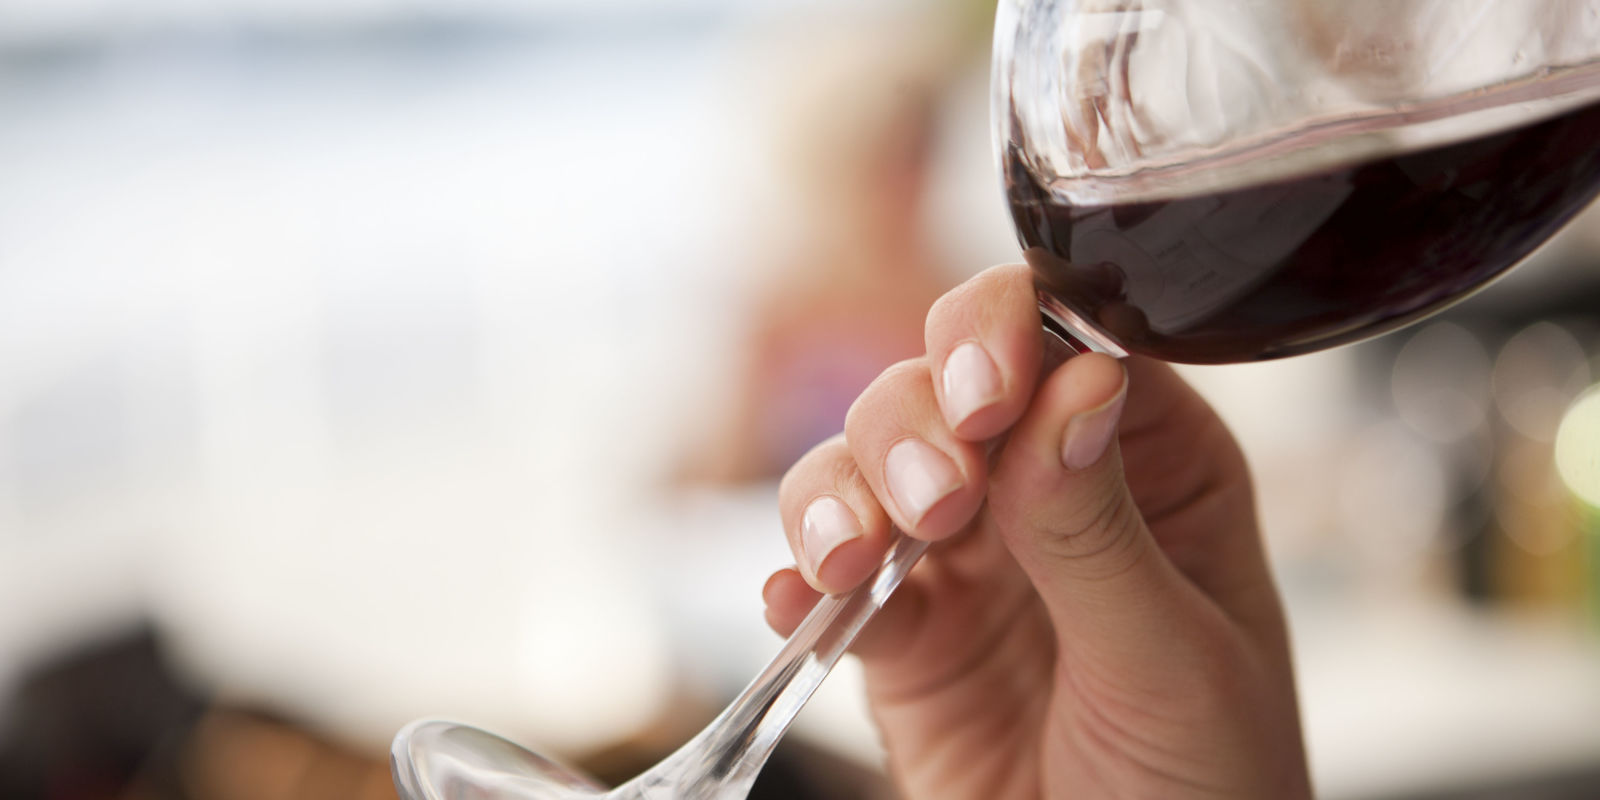 Marlisse A Cepeda 6 Easy Ways To Avoid Red Wine Stains On Your Teeth Wine